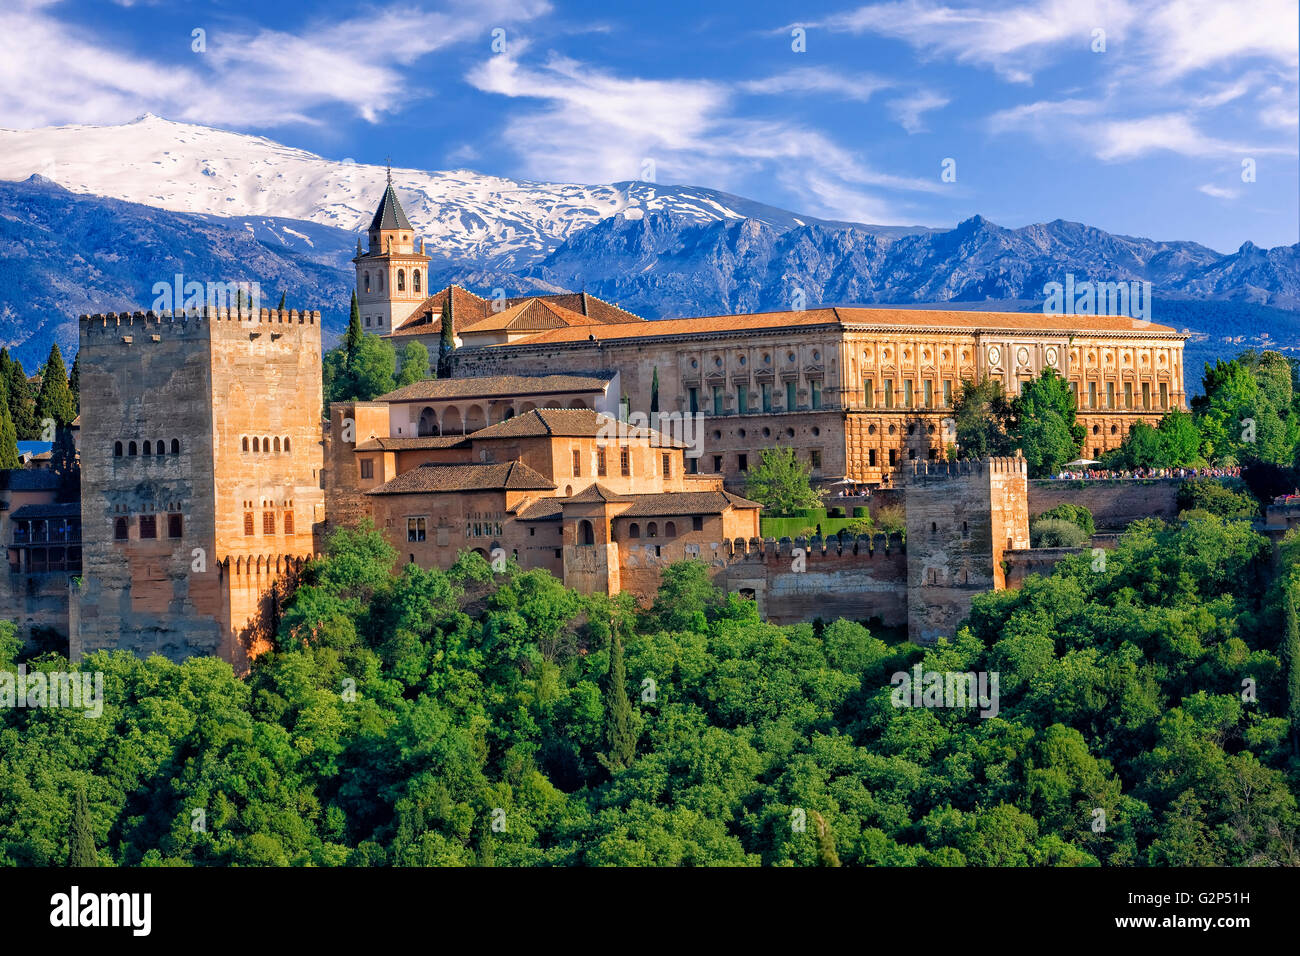 The Alhambra palace in Granada - Stock Image